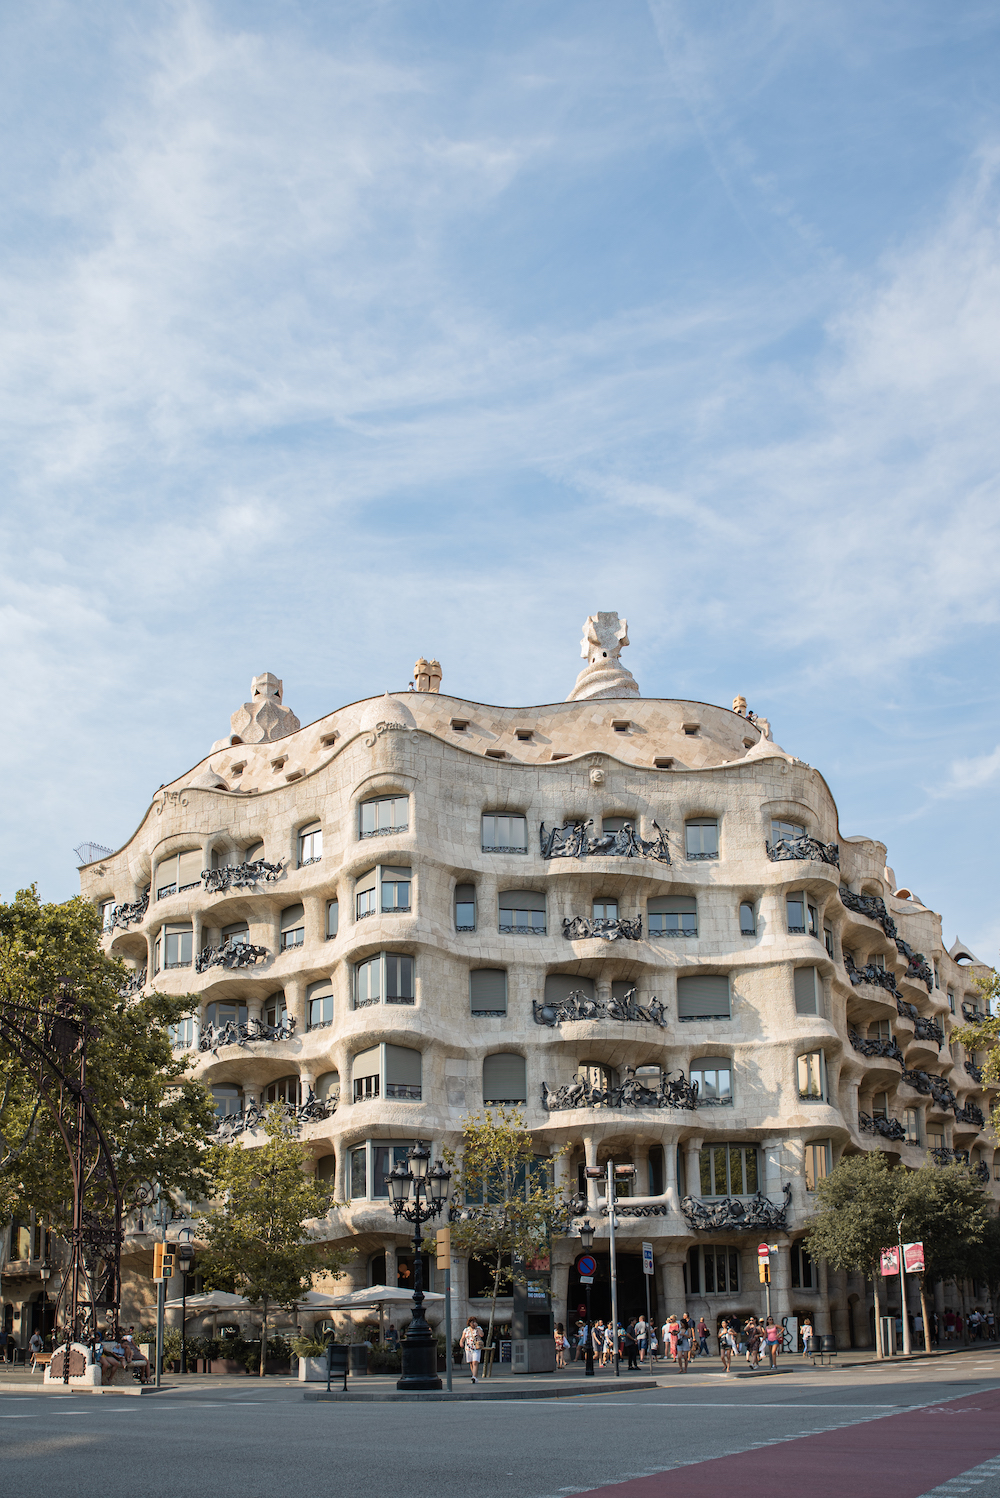 Antoni Gaudi's Casa Mila (aka La Pedrera) Modernista Architecture, Eixample, Barcelona - by Ben Holbrook from DrifftwoodJournals.com5